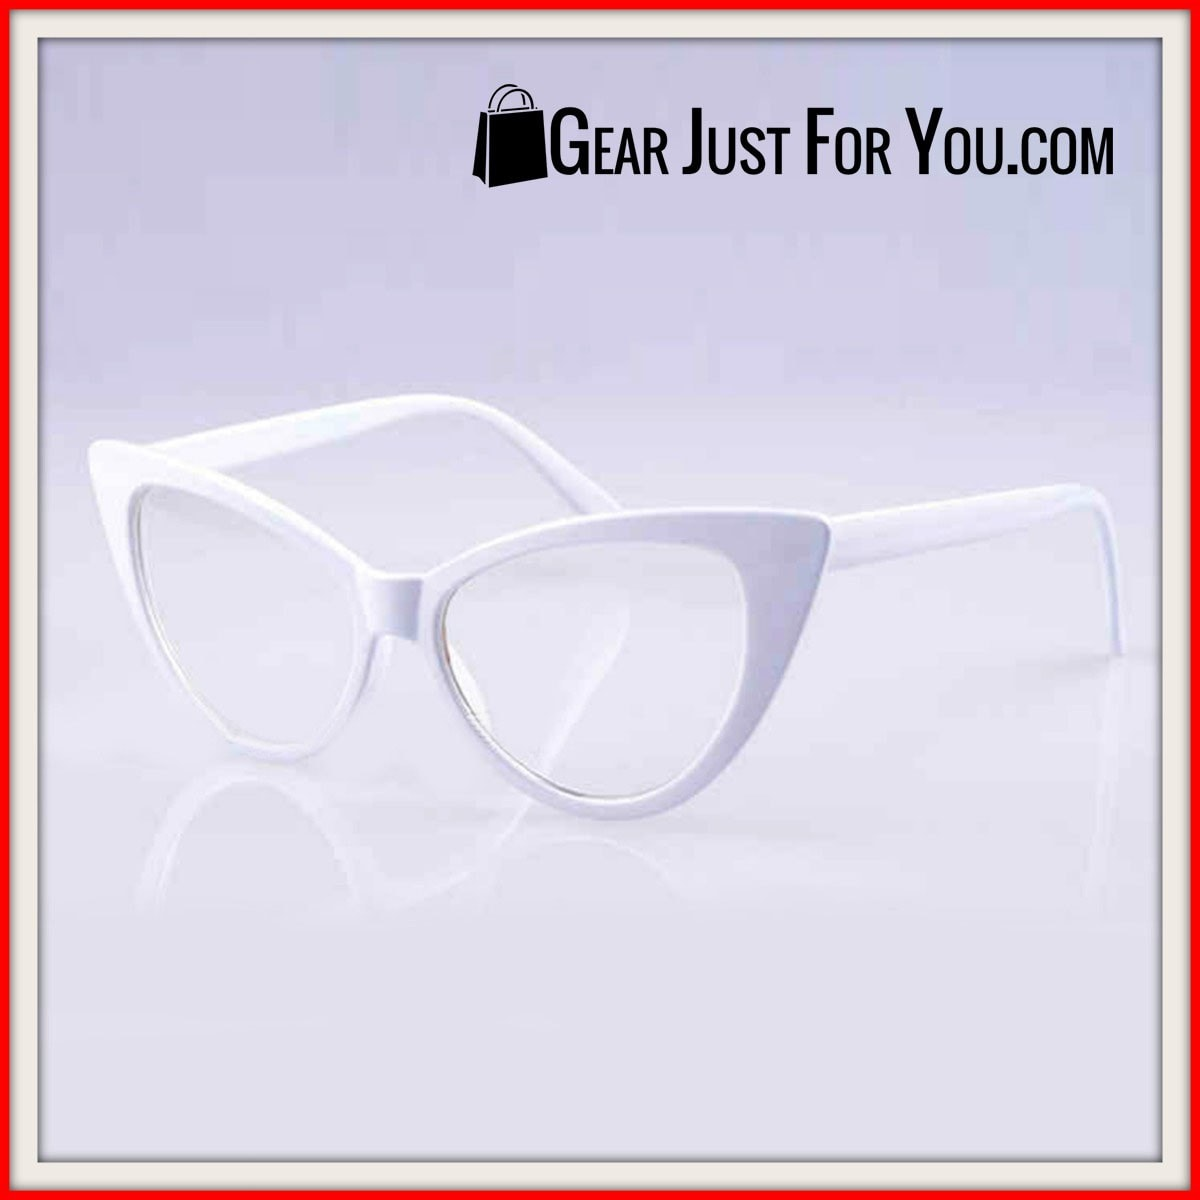 Stunning Cat Eye UV Protection Designer Sunglasses - Gear Just For You.com